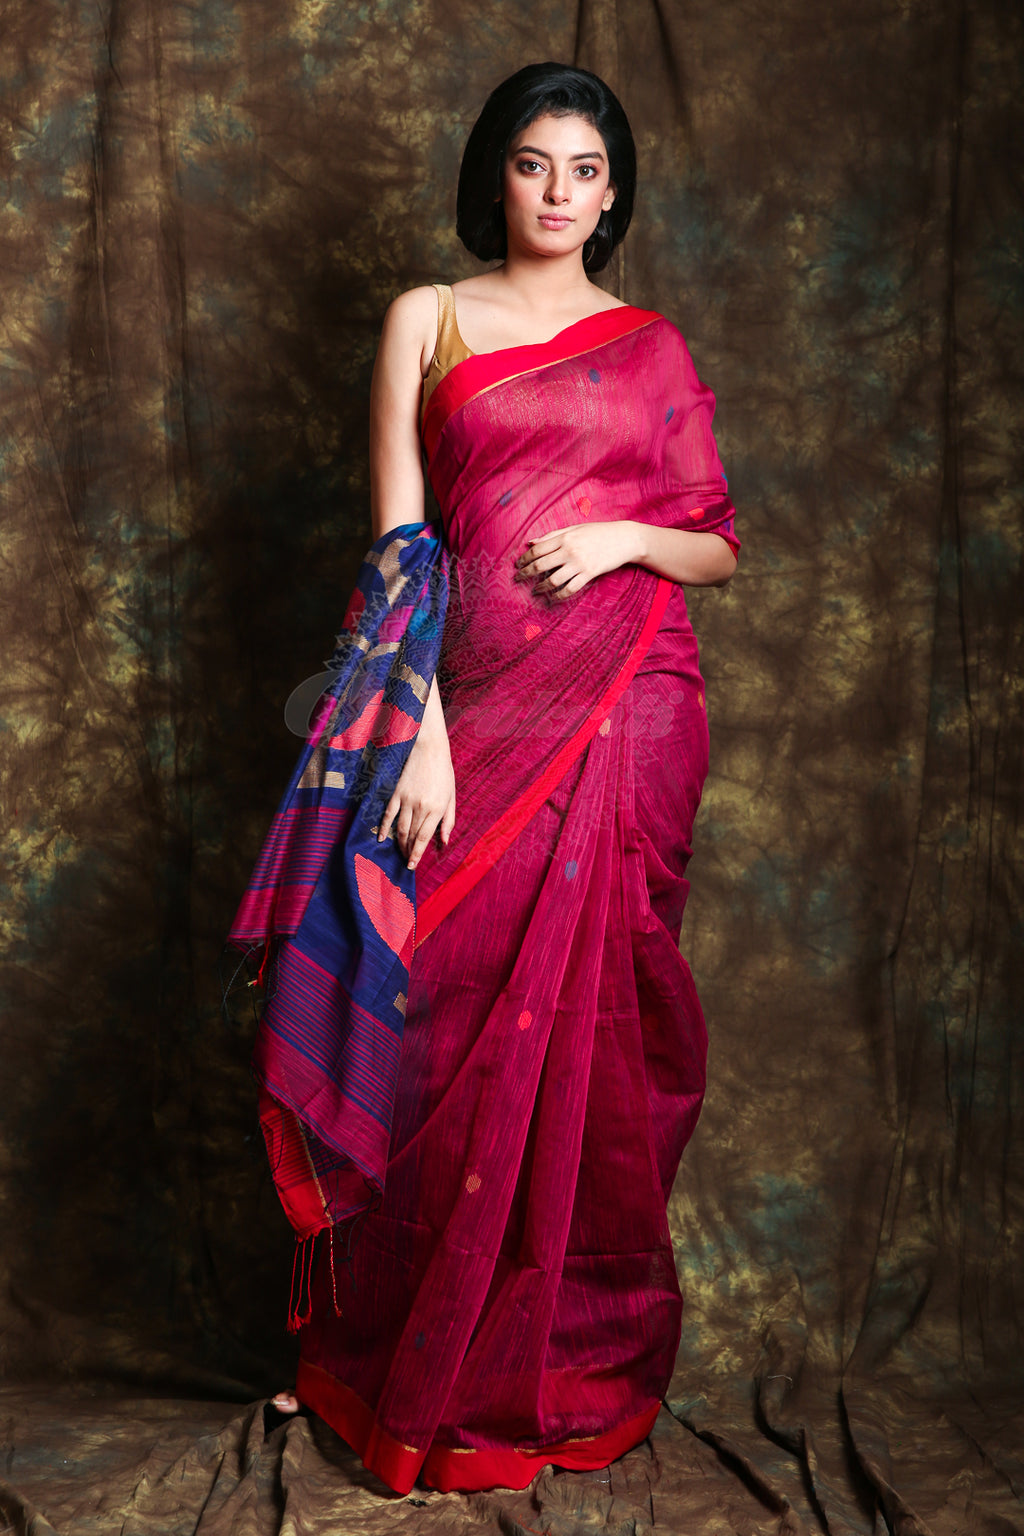 The Blended Cotton Based Deep Pink Color Saree Have Polka Dot Weaving All Over. The Pallu Have Navy Blue Color Floral Weaving And Red Border - Charukriti.co.in